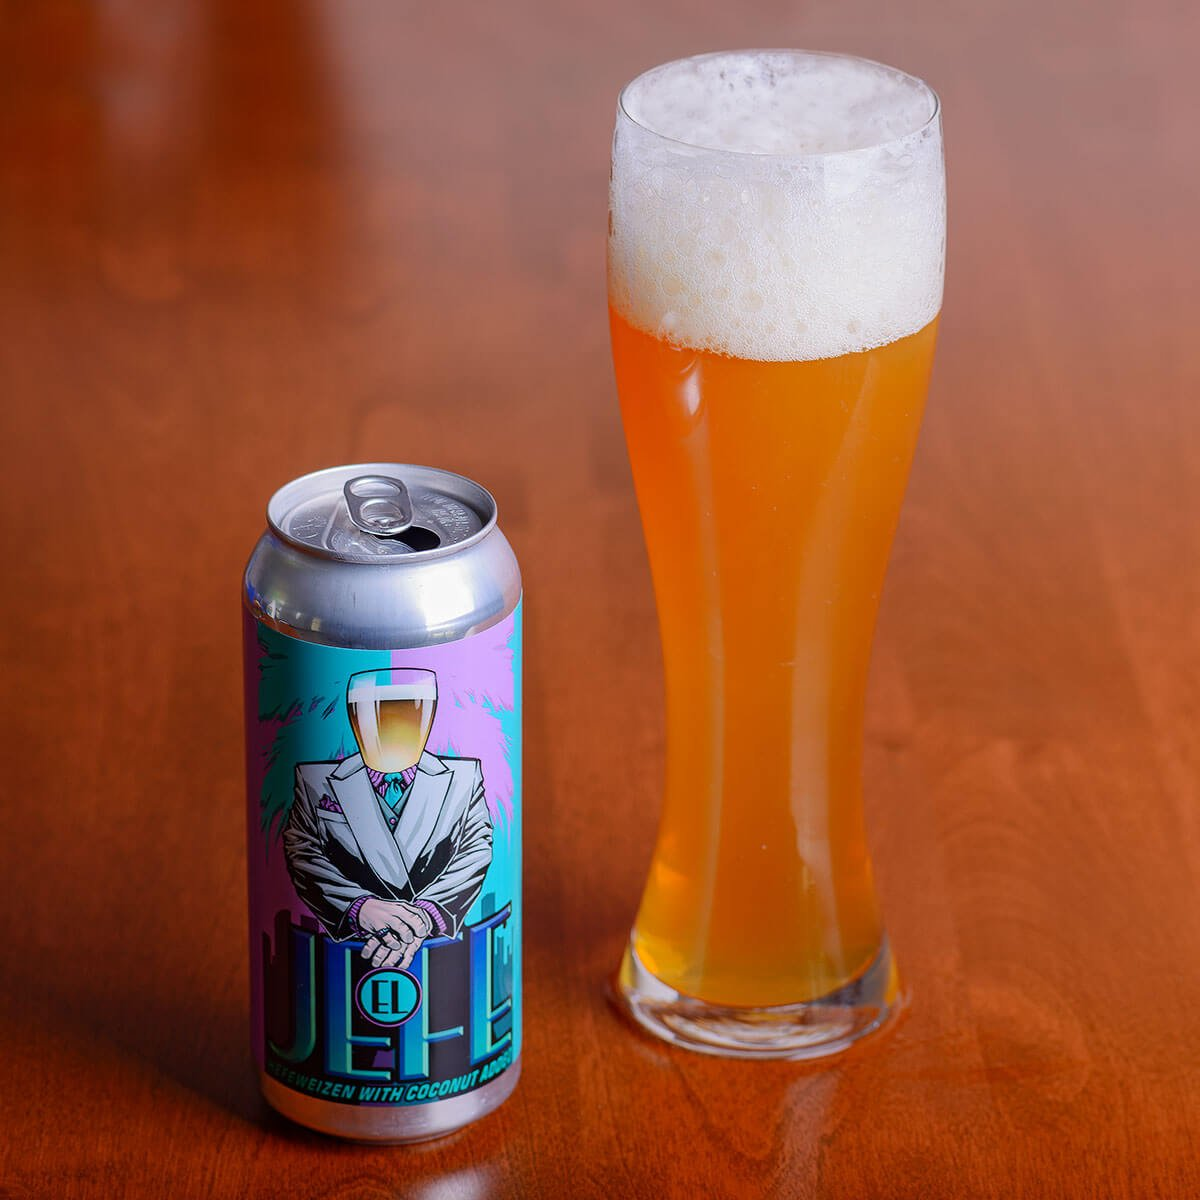 El Jefe, a German-style Hefeweizen by J. Wakefield Brewing